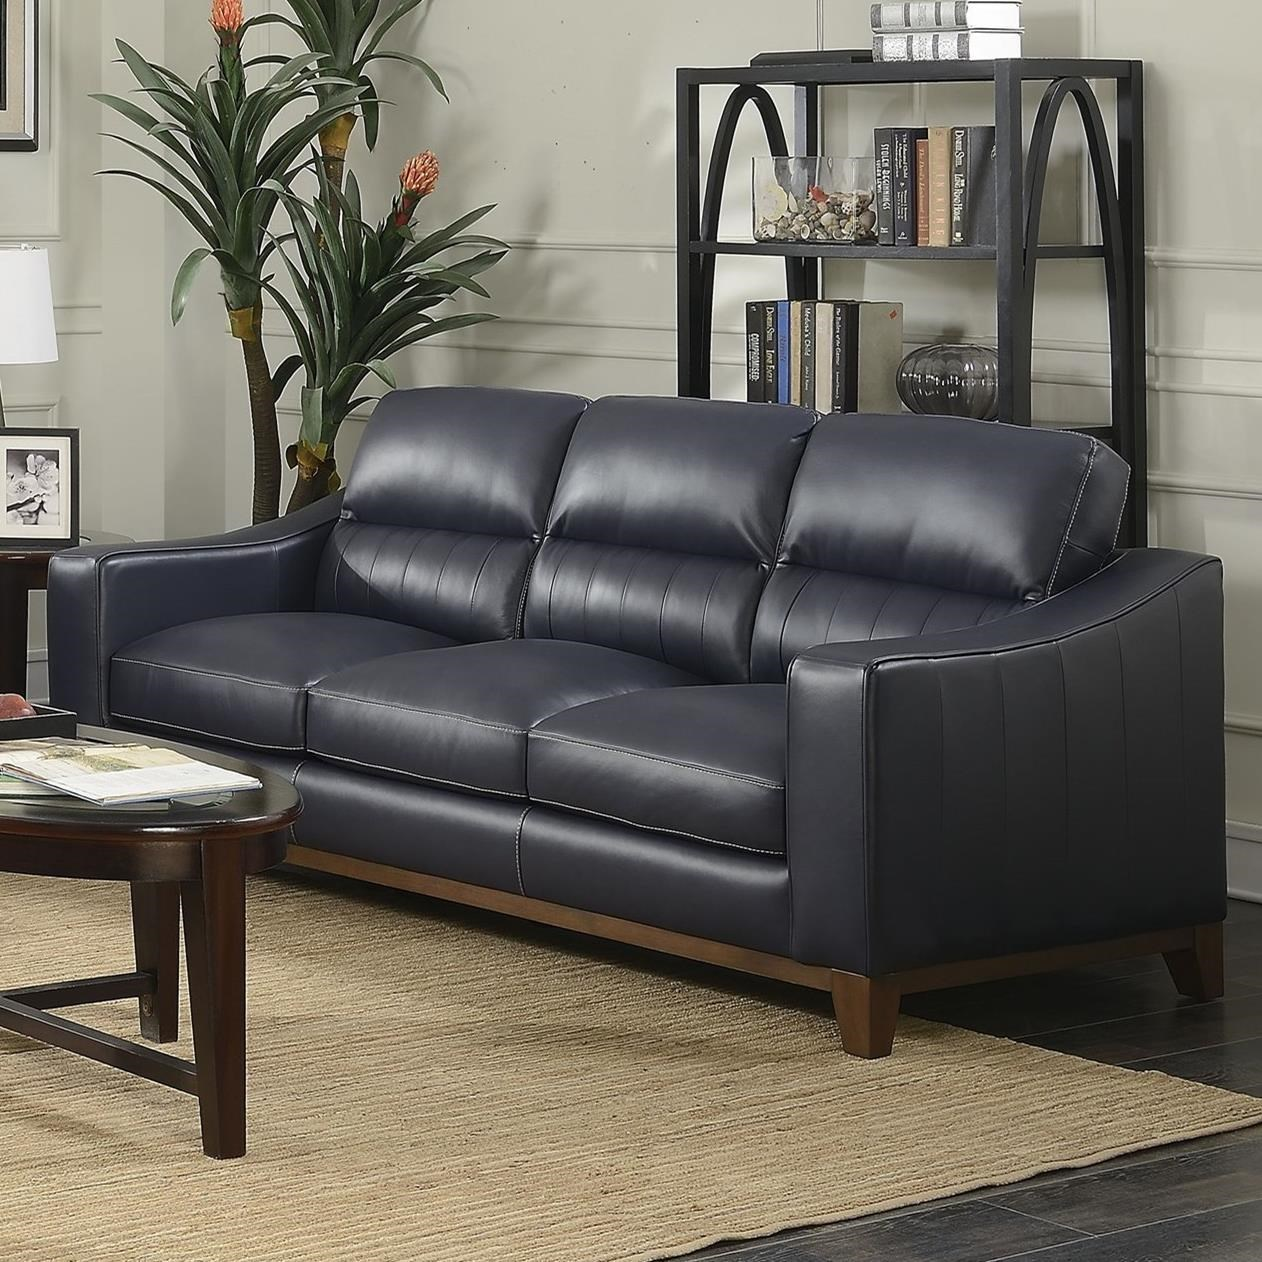 Steve Silver Keelan Contemporary Leather Sofa With Wood Base